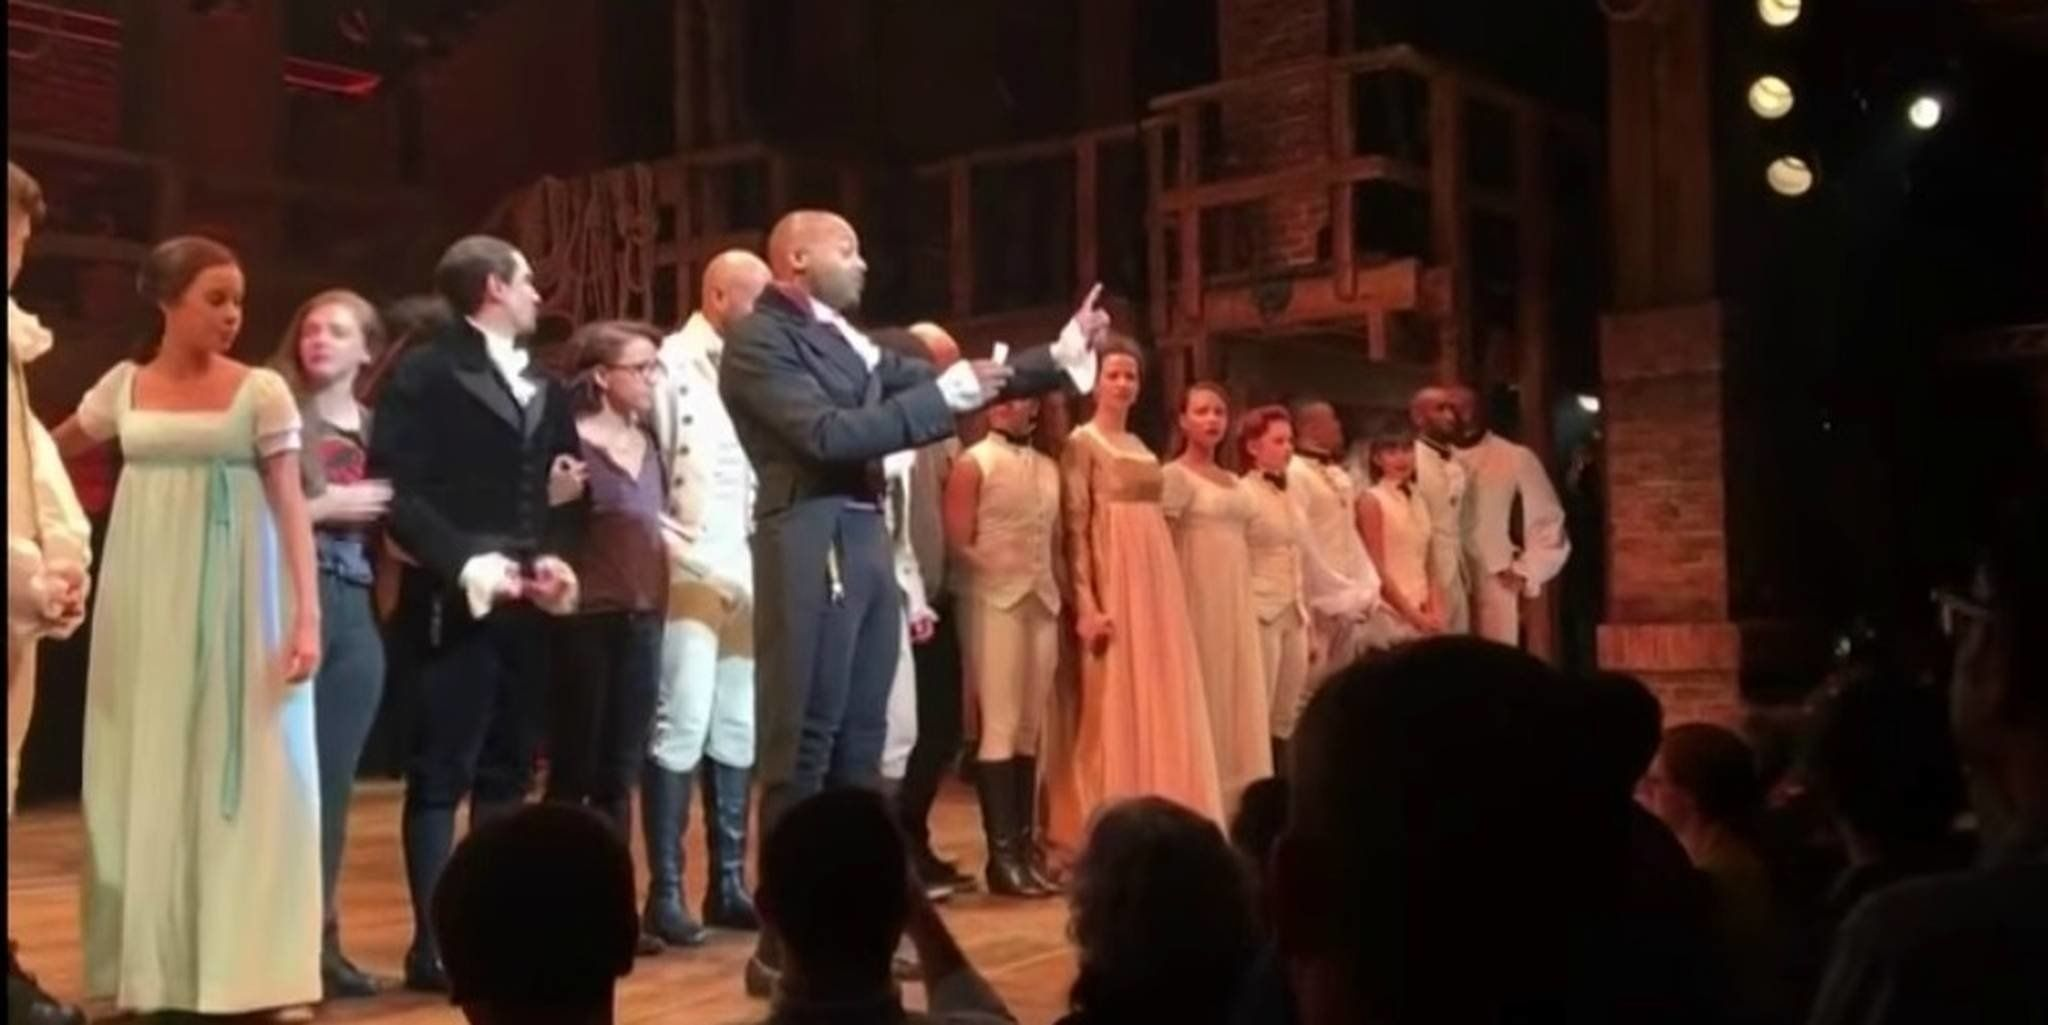 The Hamilton cast speaking to Vice President-elect Mike Pence